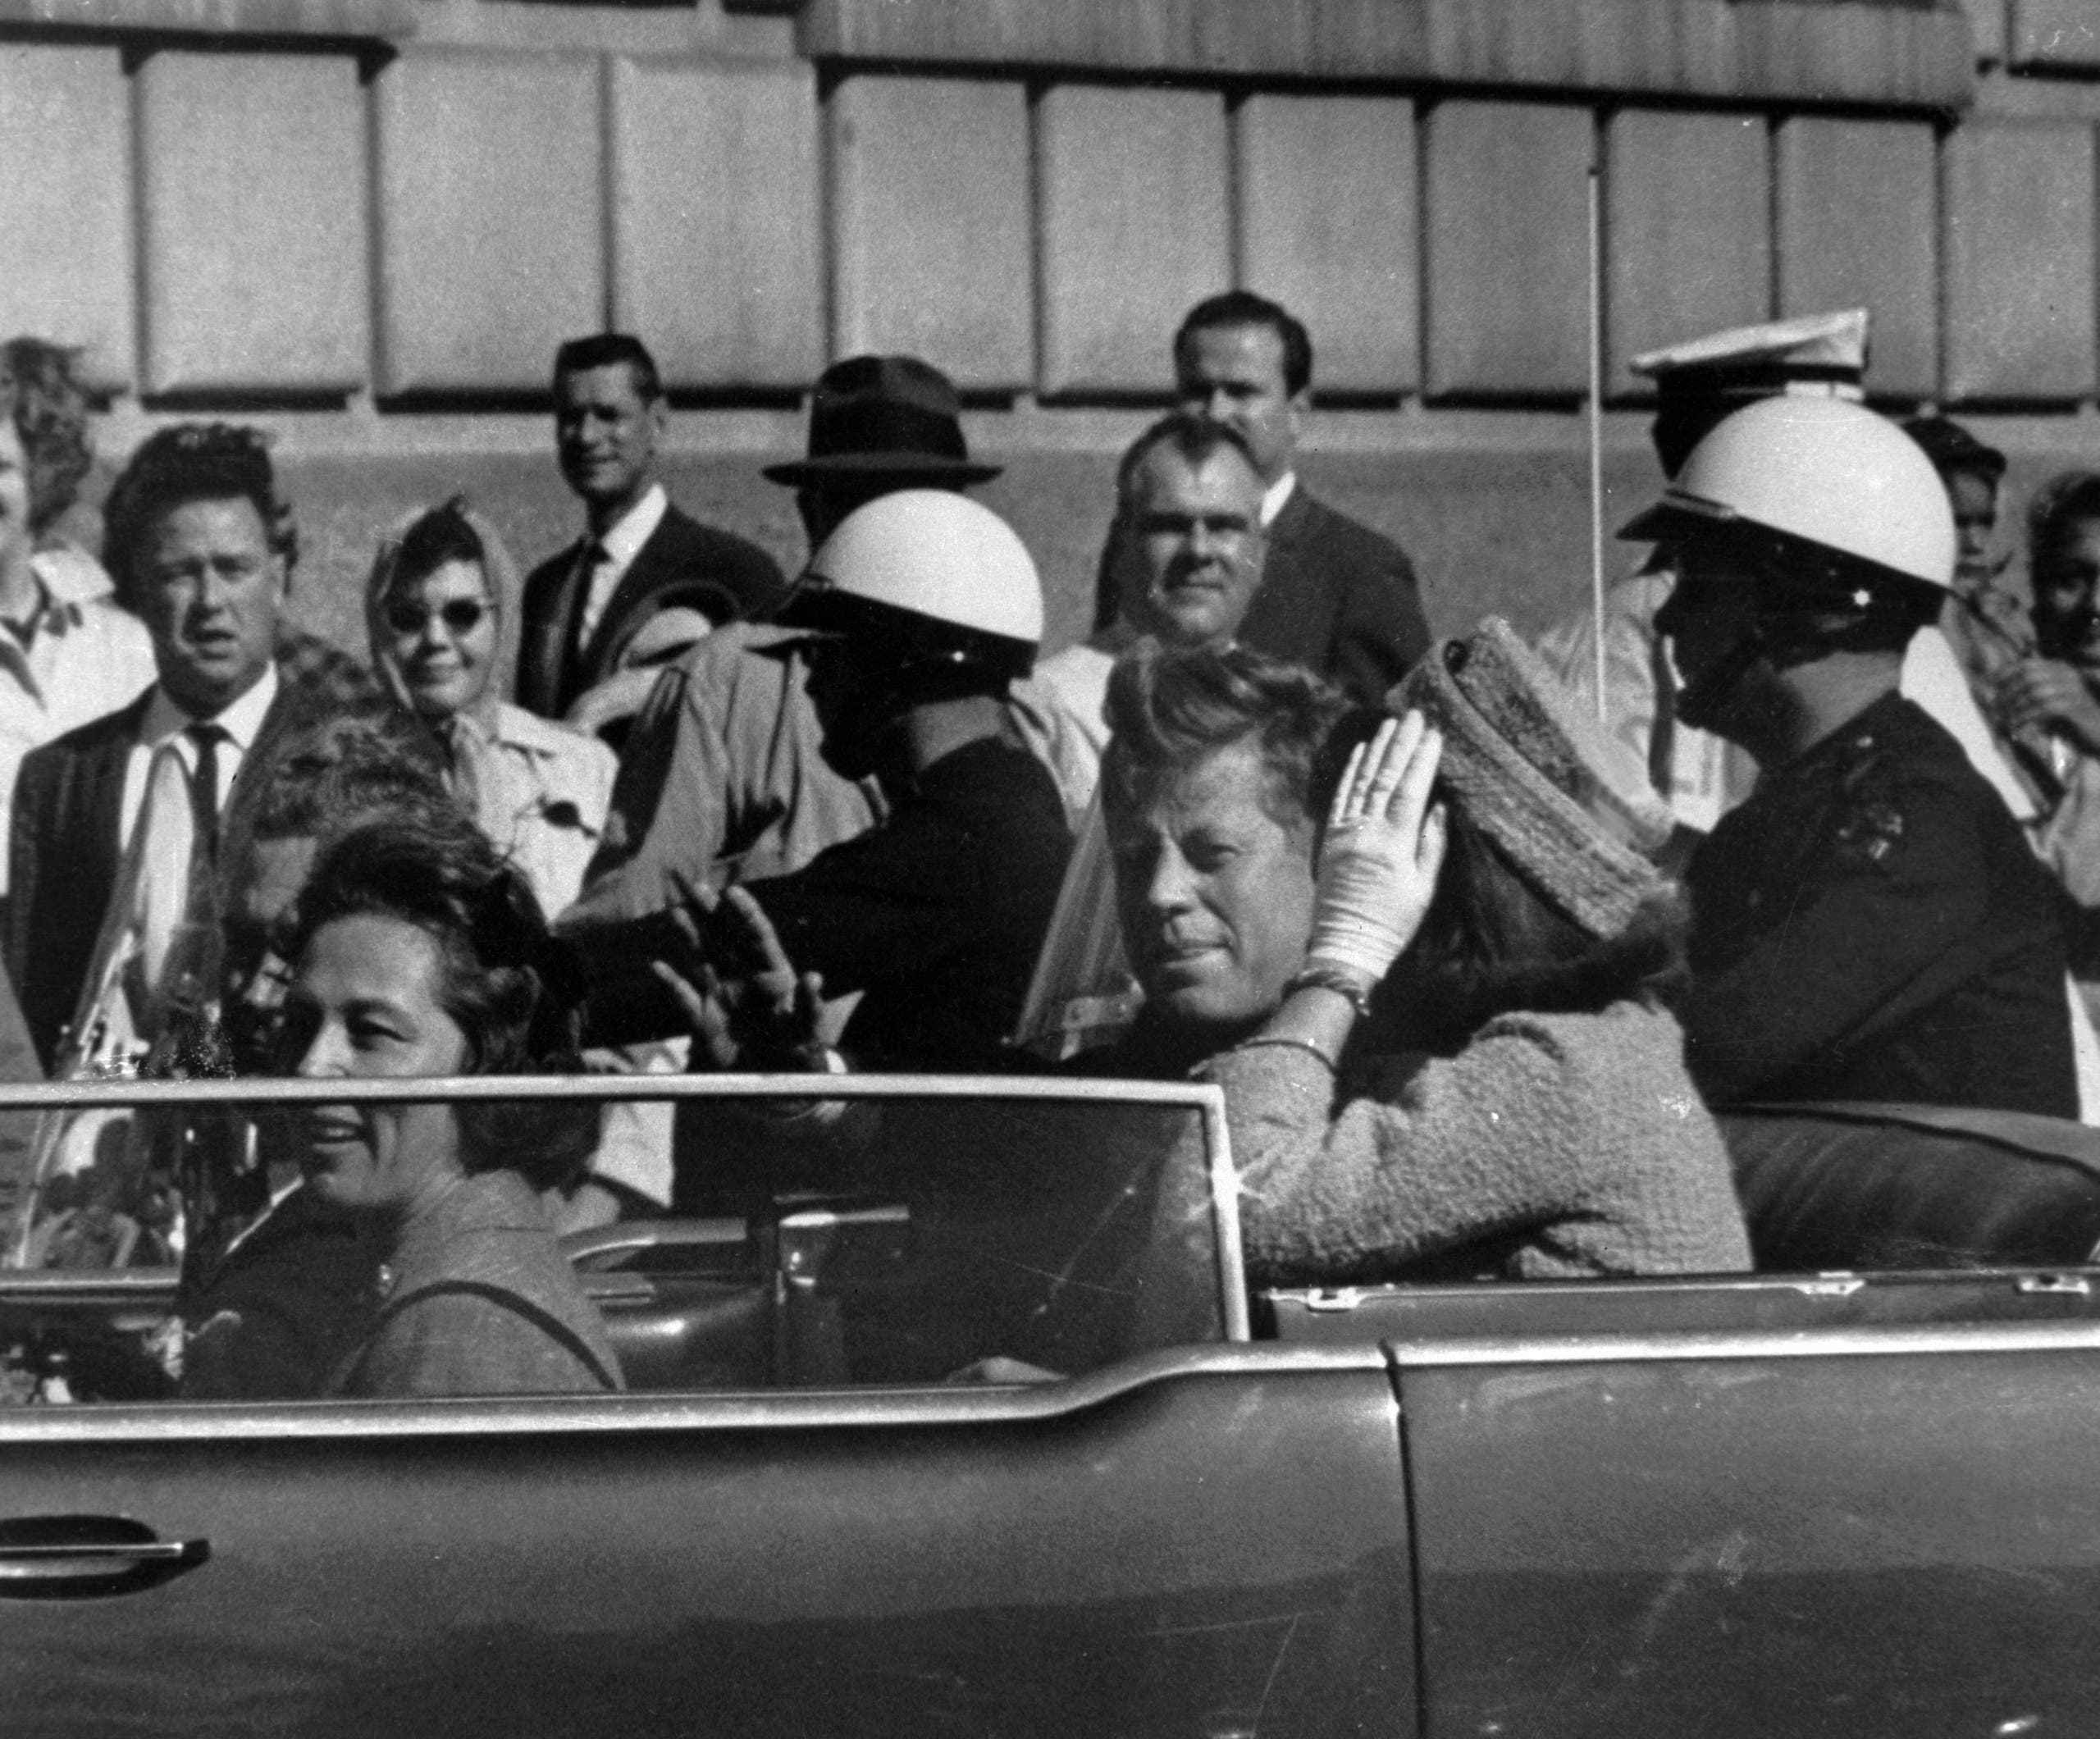 President John F. Kennedy is seen riding in motorcade approximately one minute before he was shot in Dallas, Tx., on Nov. 22, 1963. (File photo: AP)